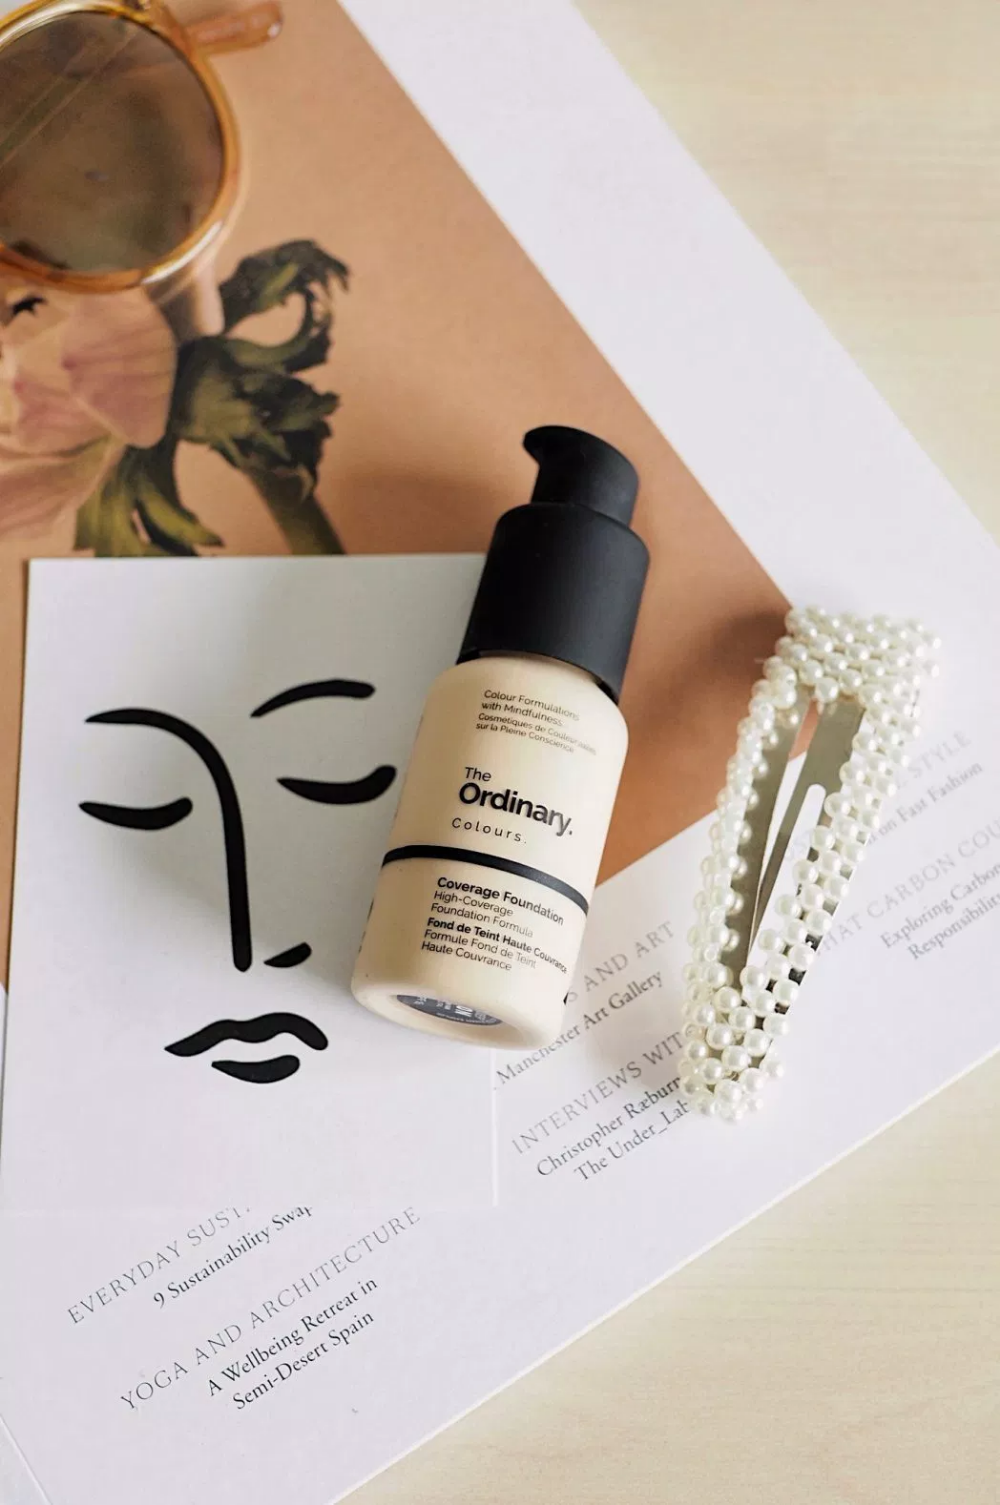 The Most Hyped Foundation Ever Flat lay photography, The